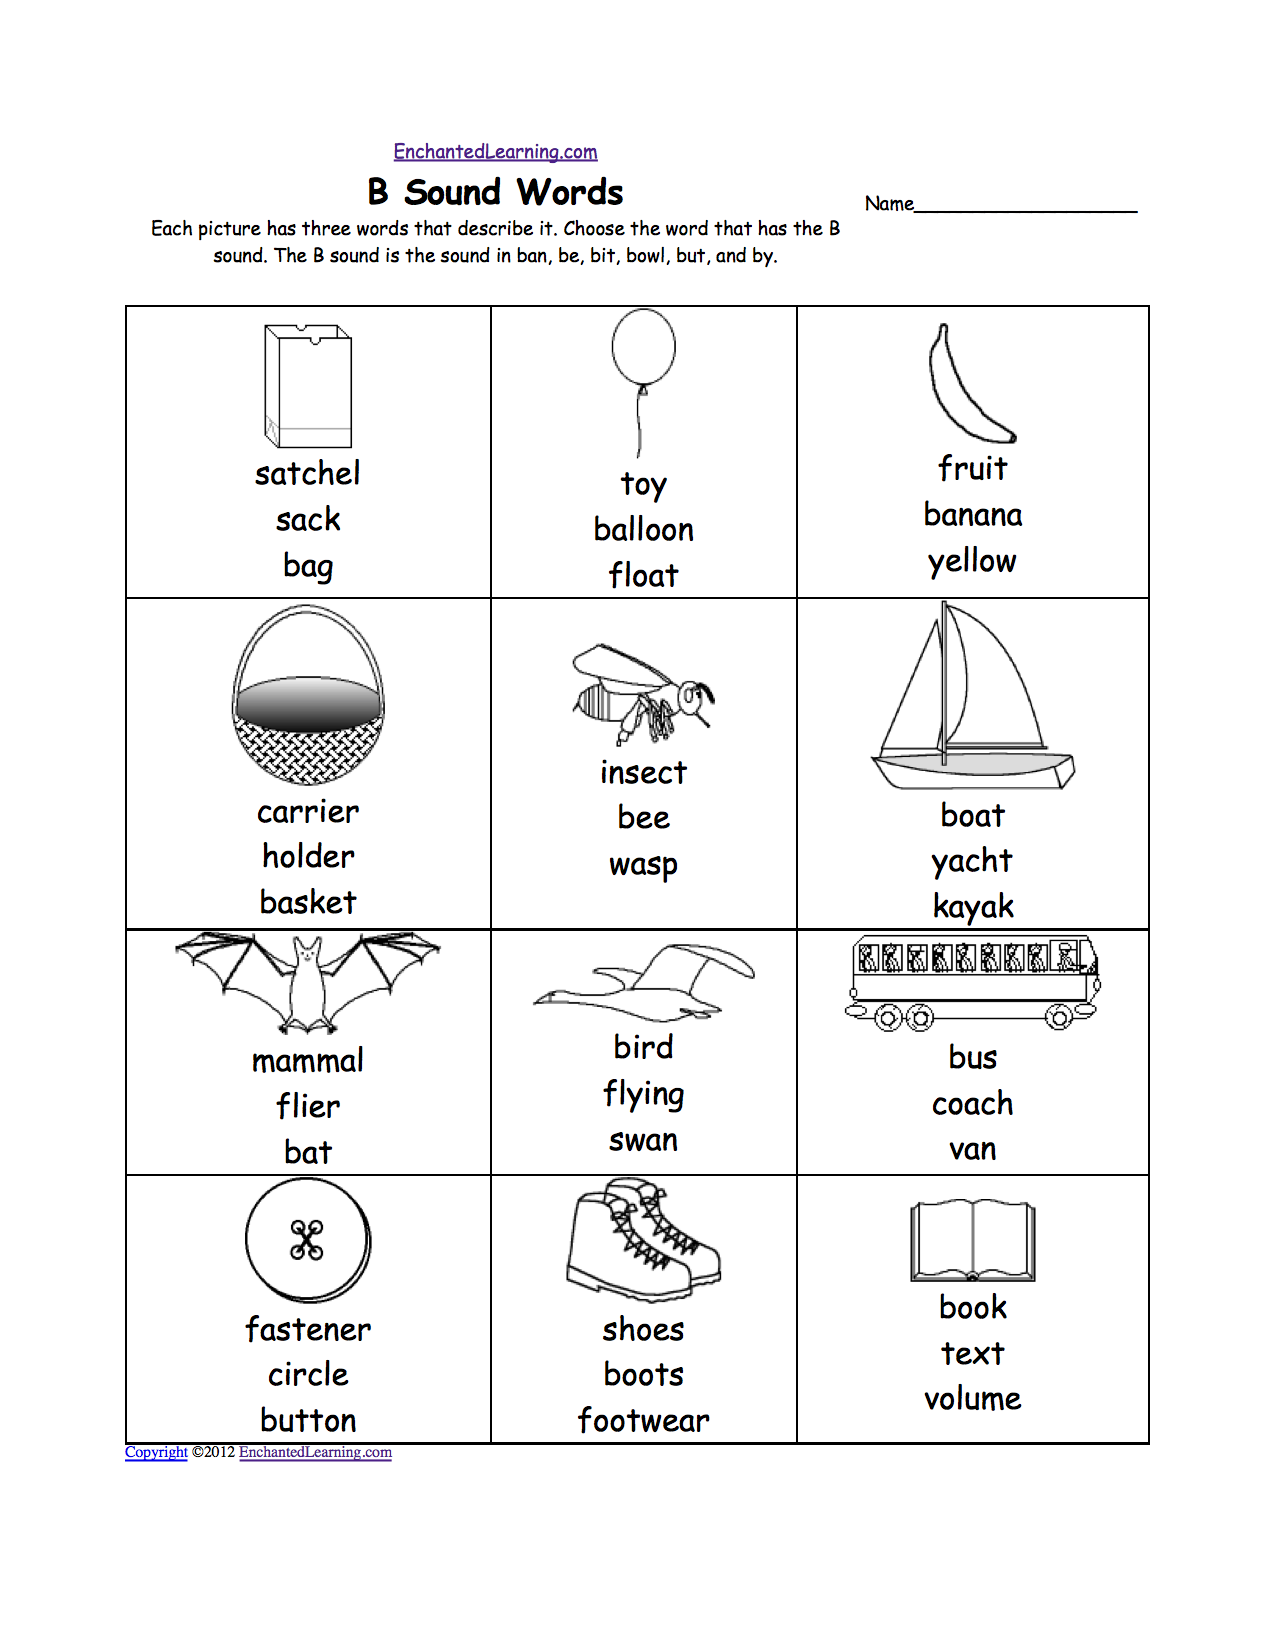 Weirdmailus  Pretty Phonics Worksheets Multiple Choice Worksheets To Print  With Fair Quotbquot Sound Phonics Worksheet Multiple Choice Each Picture Has Three Words That Describe It Choose The Word That Has A Quotbquot Sound The Quotbquot Sound Is The Sound  With Appealing Reading Worksheets Th Grade Also Verb Worksheets First Grade In Addition Visual Fraction Worksheets And Math Worksheet With Answers As Well As Biology Review Worksheets Additionally Missing Angles In Quadrilaterals Worksheet From Enchantedlearningcom With Weirdmailus  Fair Phonics Worksheets Multiple Choice Worksheets To Print  With Appealing Quotbquot Sound Phonics Worksheet Multiple Choice Each Picture Has Three Words That Describe It Choose The Word That Has A Quotbquot Sound The Quotbquot Sound Is The Sound  And Pretty Reading Worksheets Th Grade Also Verb Worksheets First Grade In Addition Visual Fraction Worksheets From Enchantedlearningcom